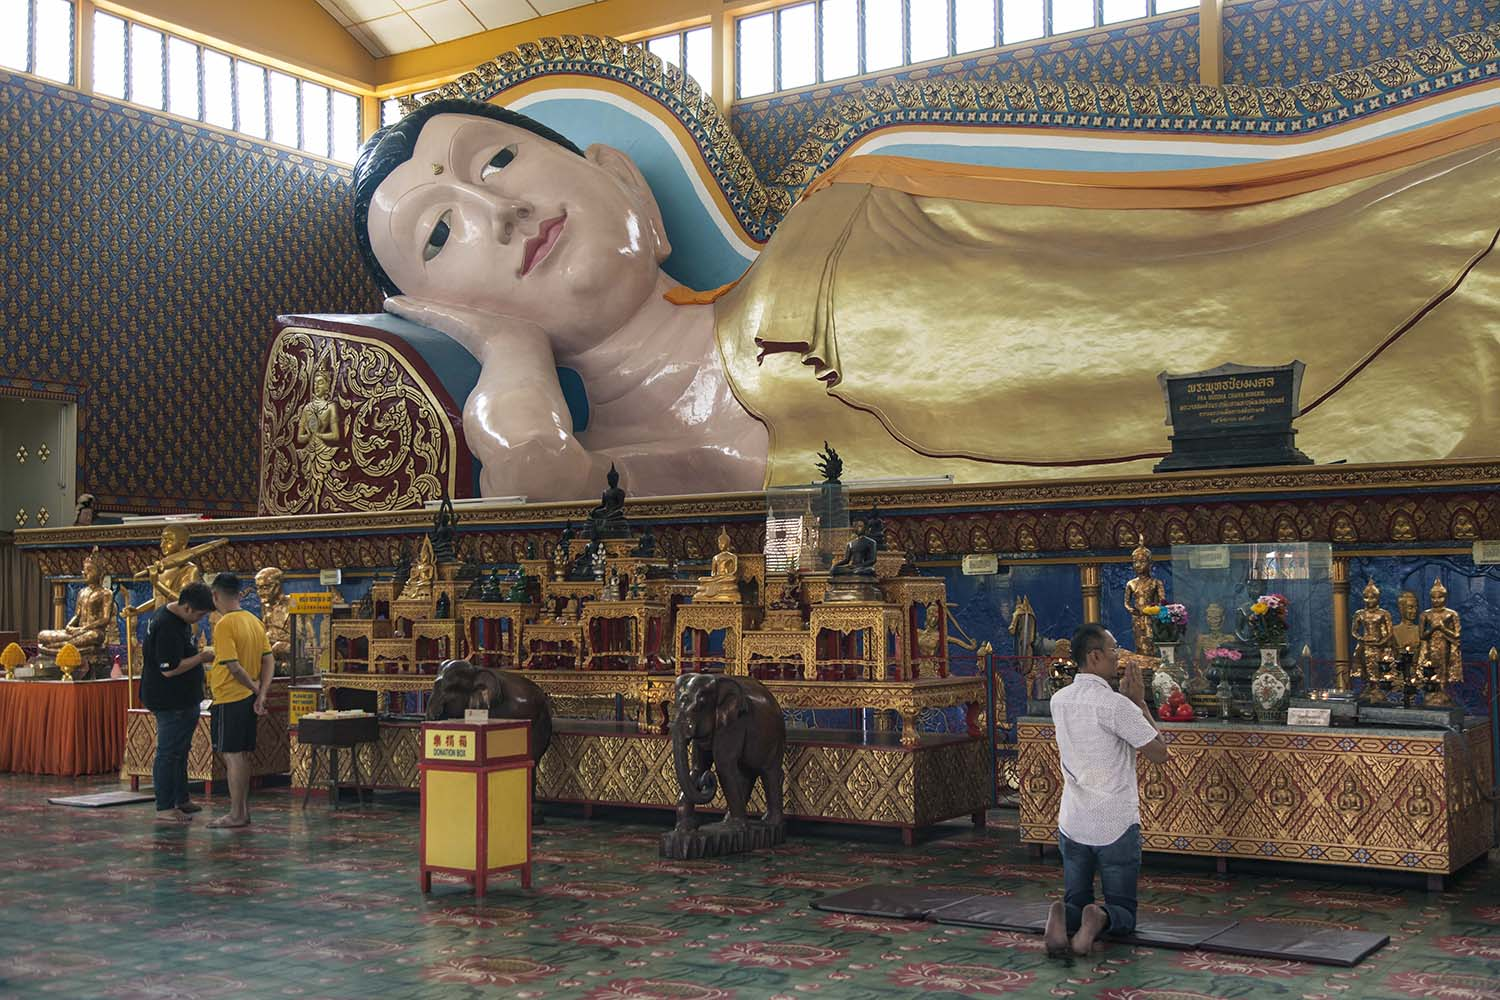 A 33-meter-long reclining Buddha statue is located in the main room of Wat Chayamangkalaram. It is one of the longest reclining Buddha statues in the world. JP/Irene Barlian